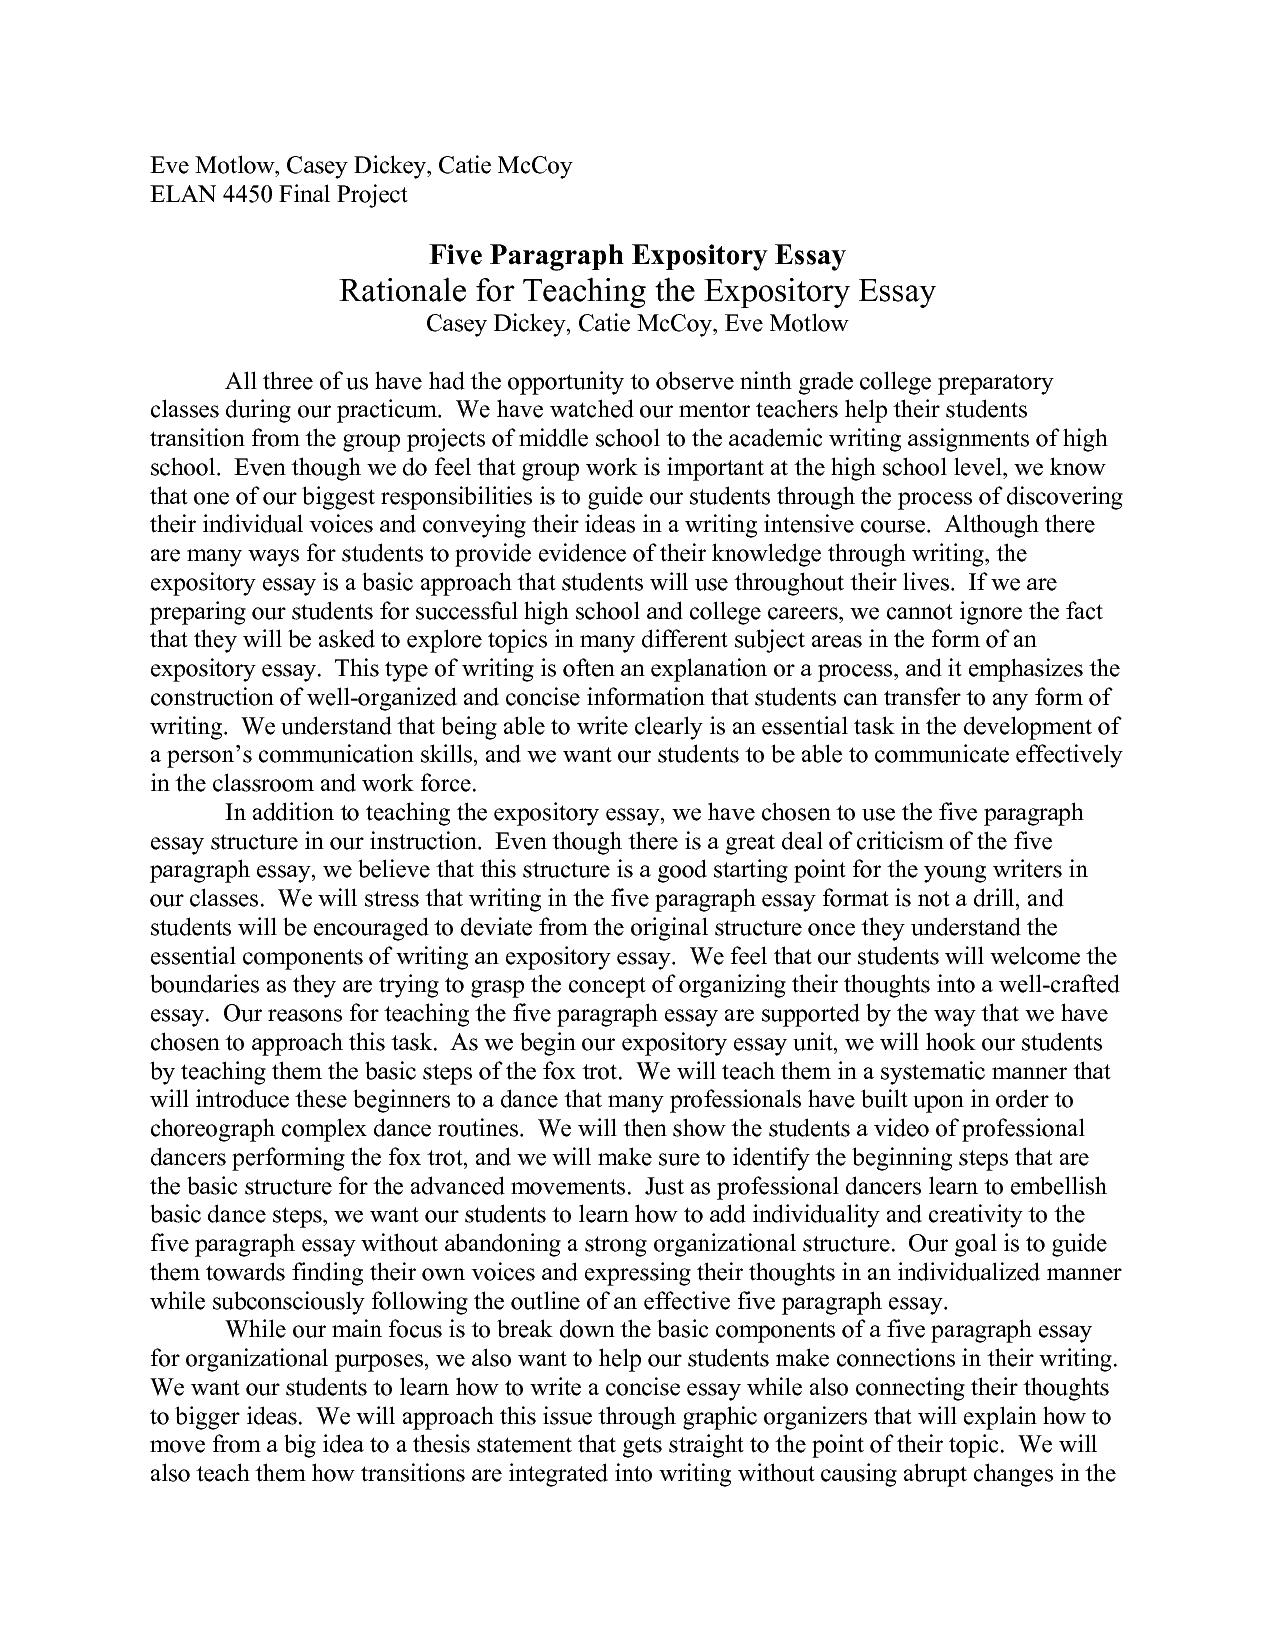 5 paragraph essay on the bill of rights